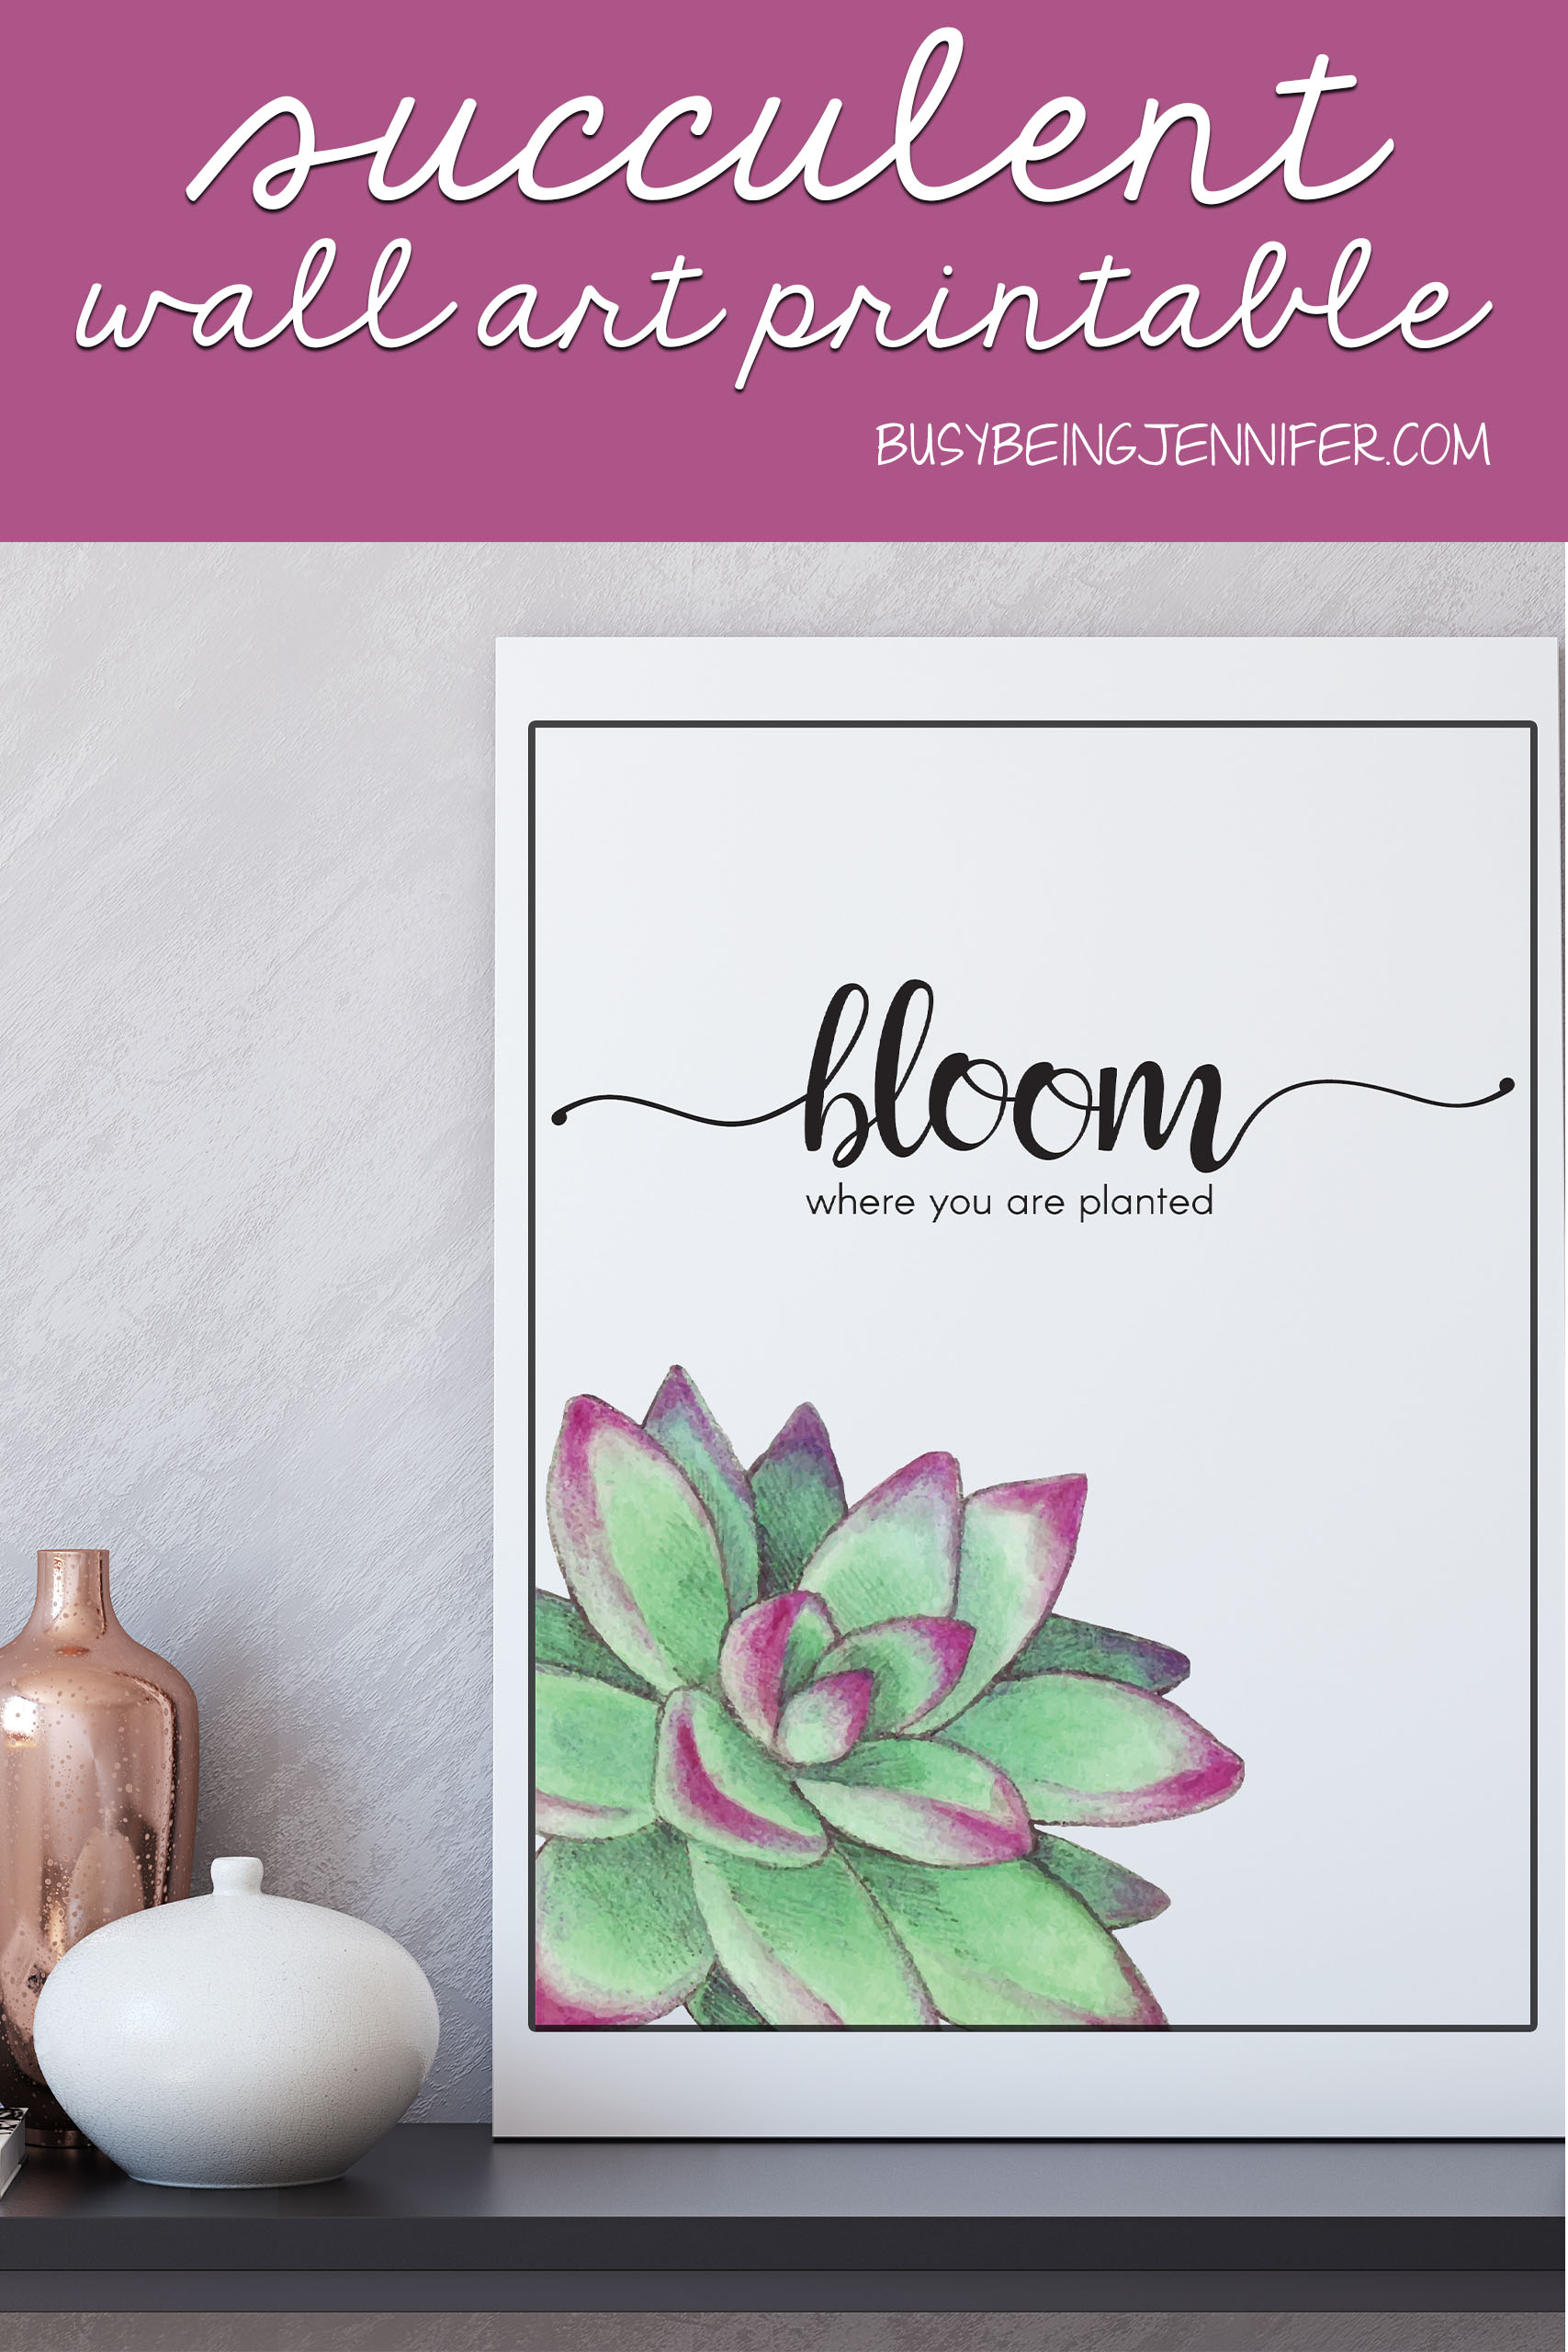 I needed a little uplifting somethin-somethin on my office wall, to mix-up the blah I'm feeling lately. This Succulent Wall Art Free Printable was the resulting piece that I just couldn't love more.